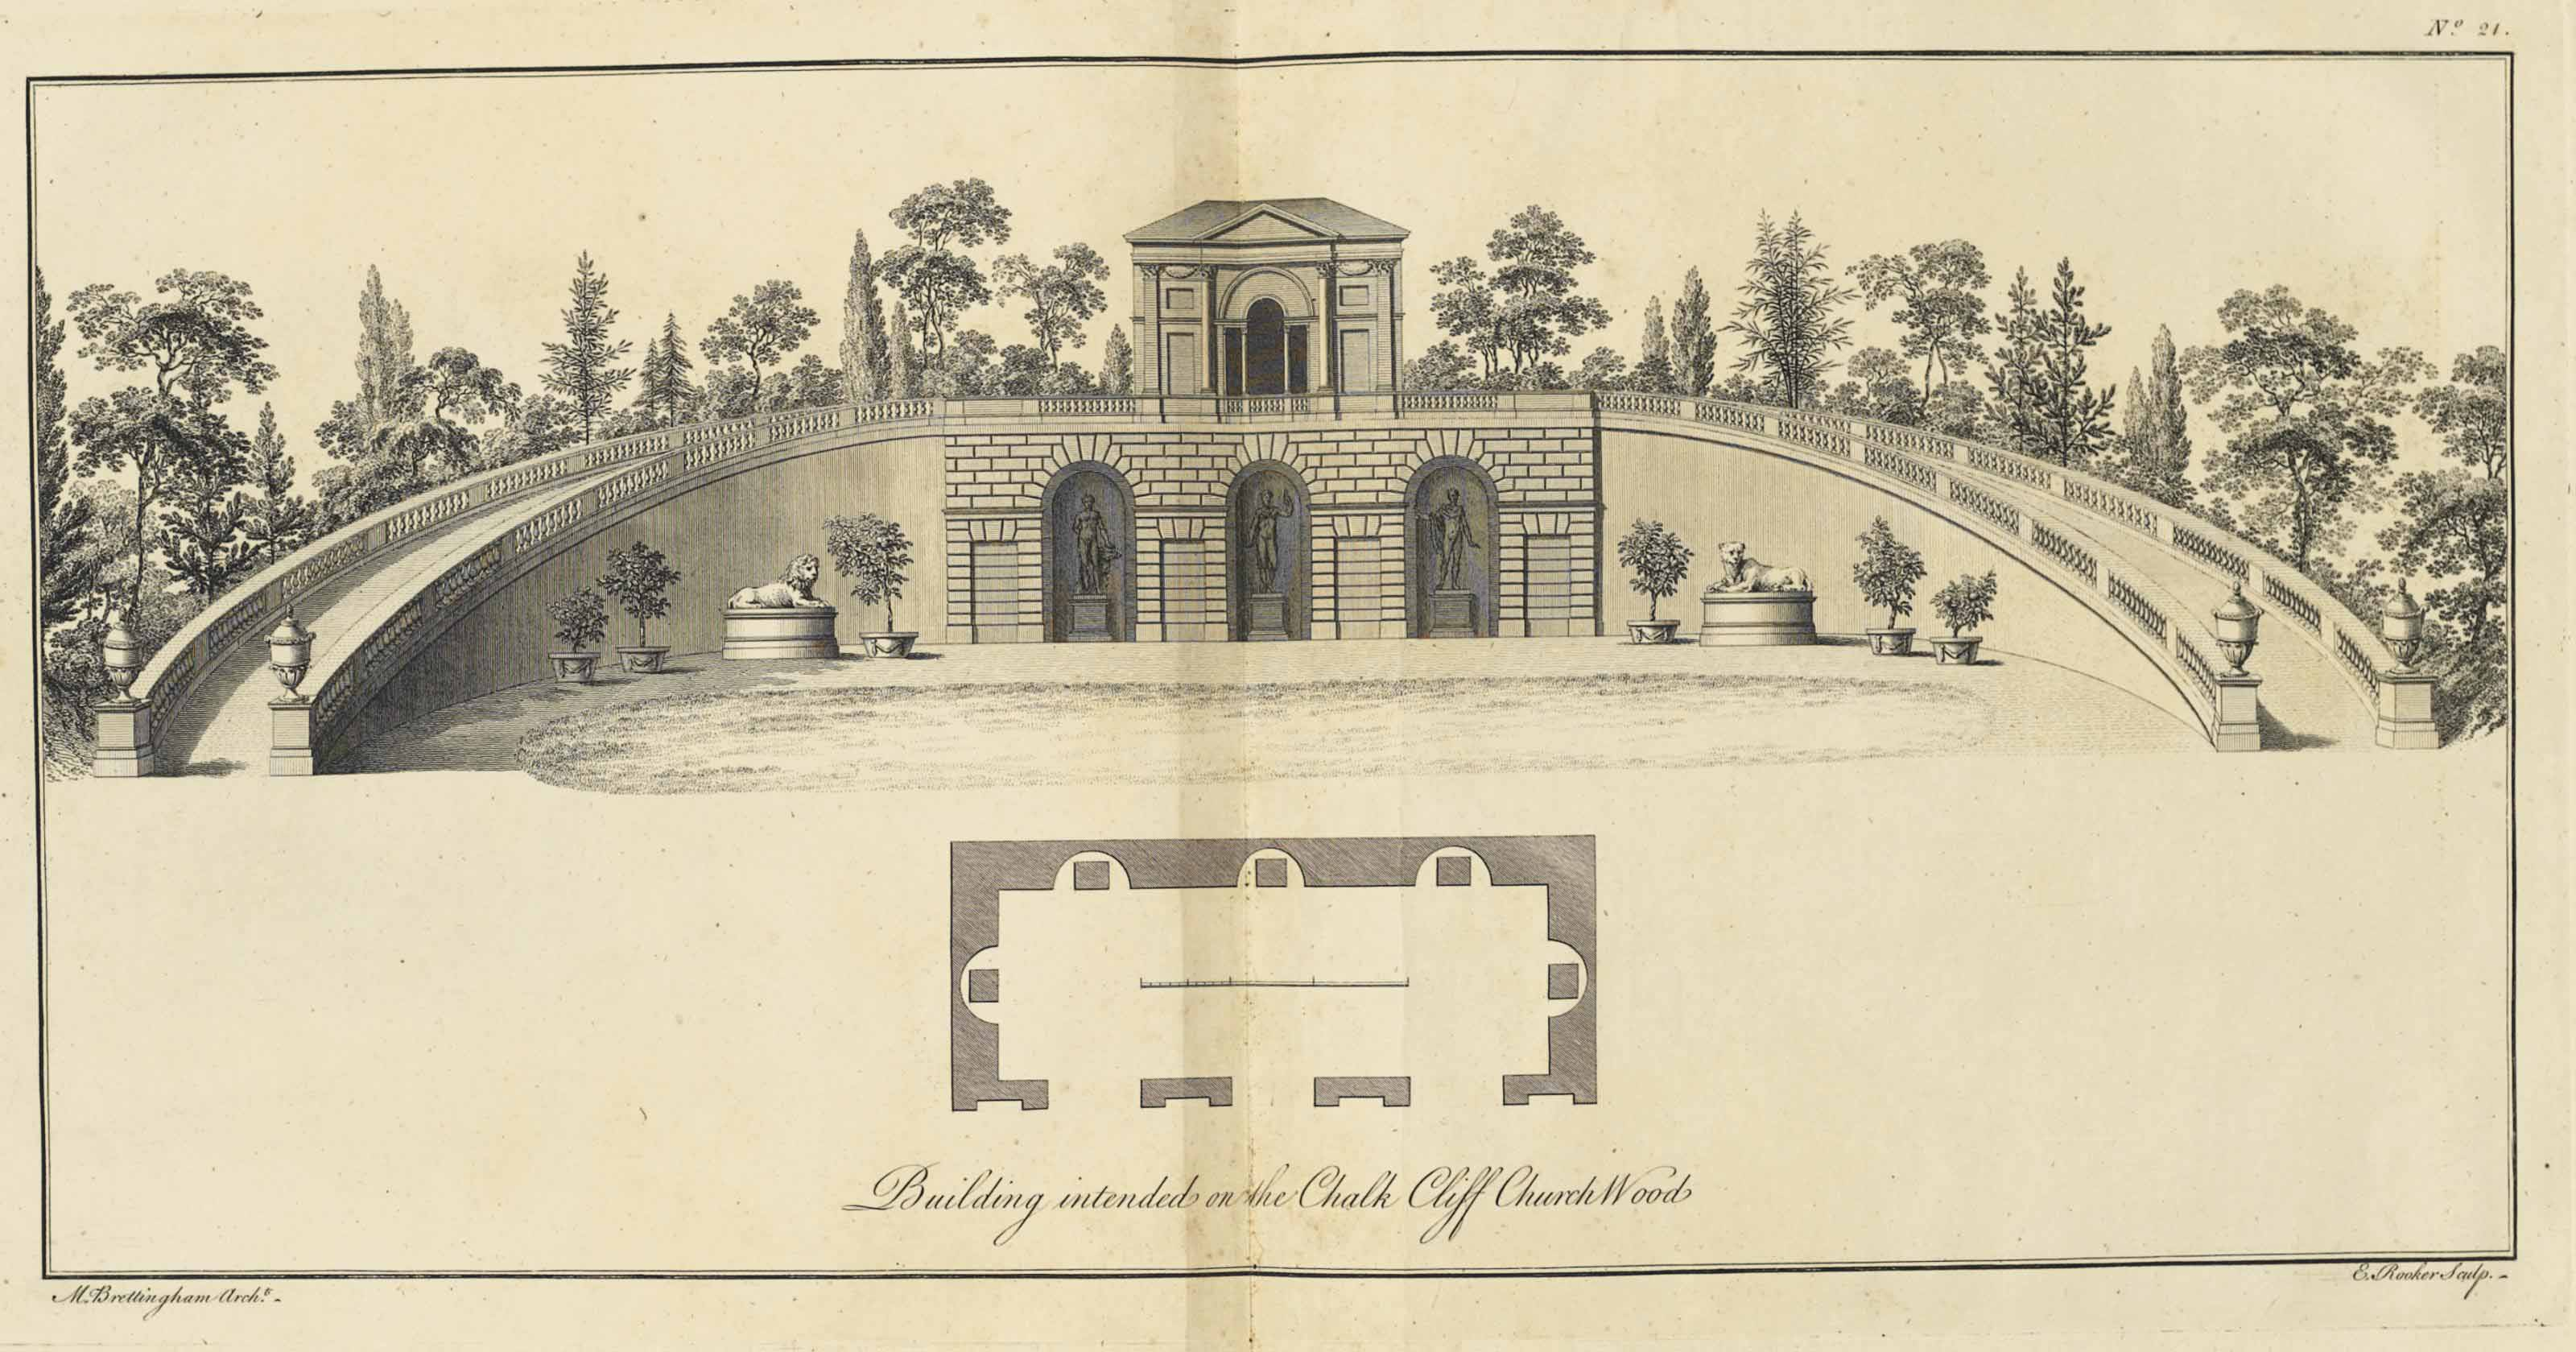 BRETTINGHAM, Matthew (1699-1769). The Plans, Elevations and Sections, of Holkham in Norfolk, the seat of the late Earl of Leicester. London: J. Haberkorn, 1761. 2° (508 x 364mm). 27 engraved plates by T. Miller and others after Brettingham, 5 double-page, 2 folding. (Marginal water-staining, light dust-soiling, short tear to preface leaf.) Contemporary half sheep over marbled boards, speckled edges (extremities worn). Provenance: The Earls of Portarlington (Emo Park bookplate).